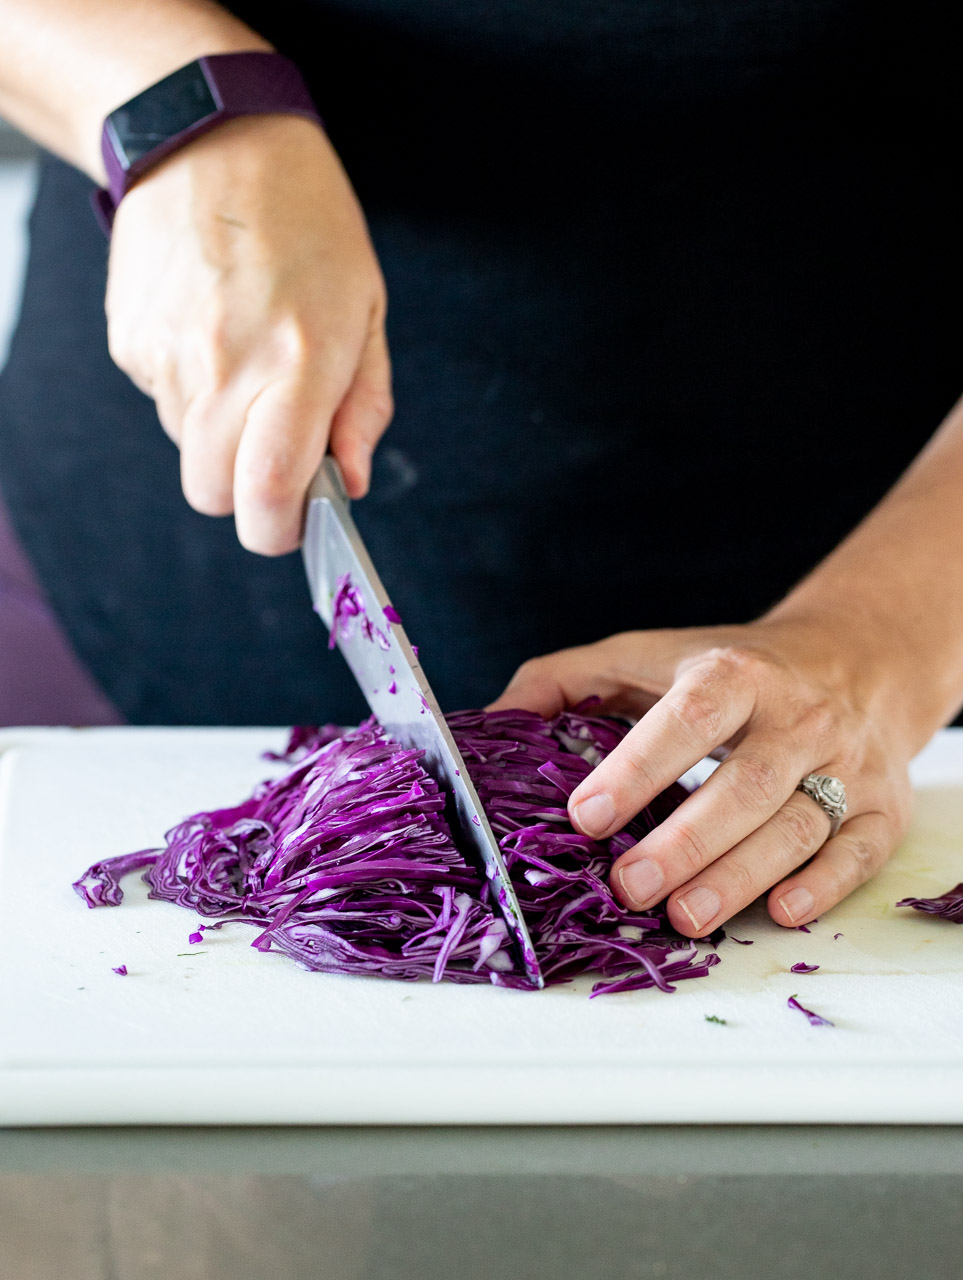 woman cutting up red cabbage